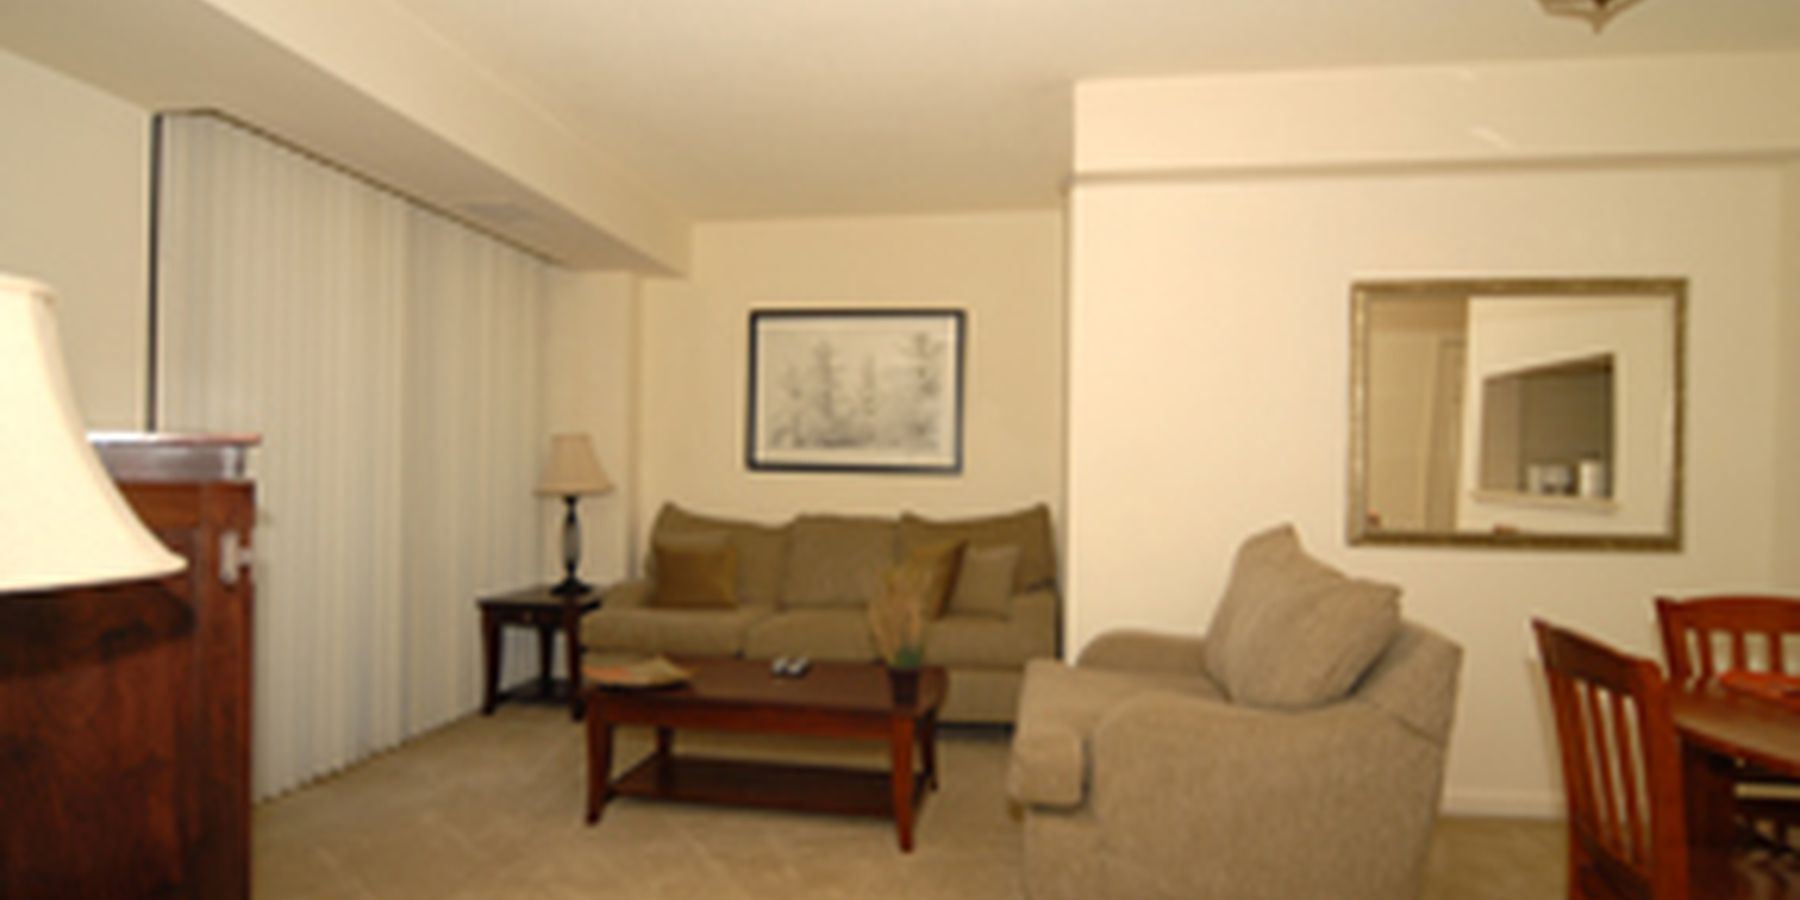 Crystal City Apartments - Interior